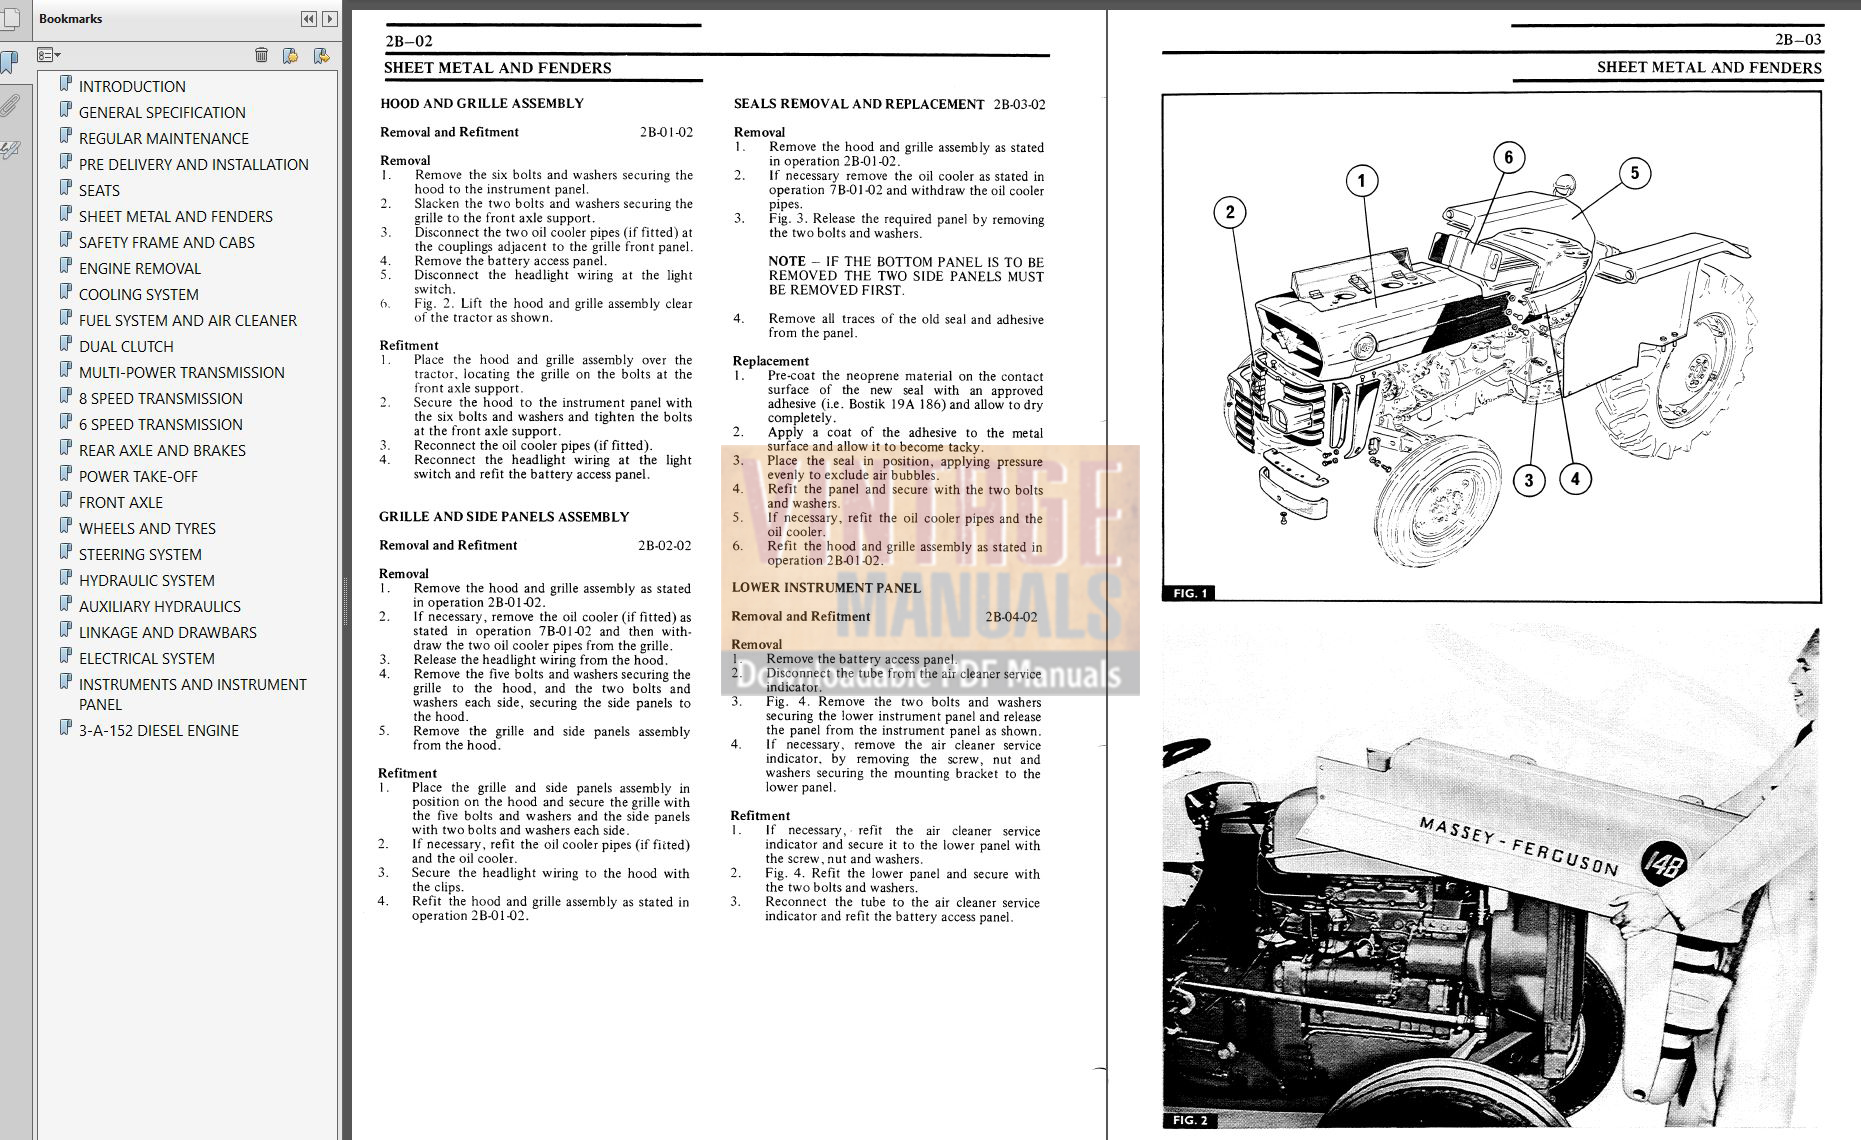 massey ferguson 135 manual pdf